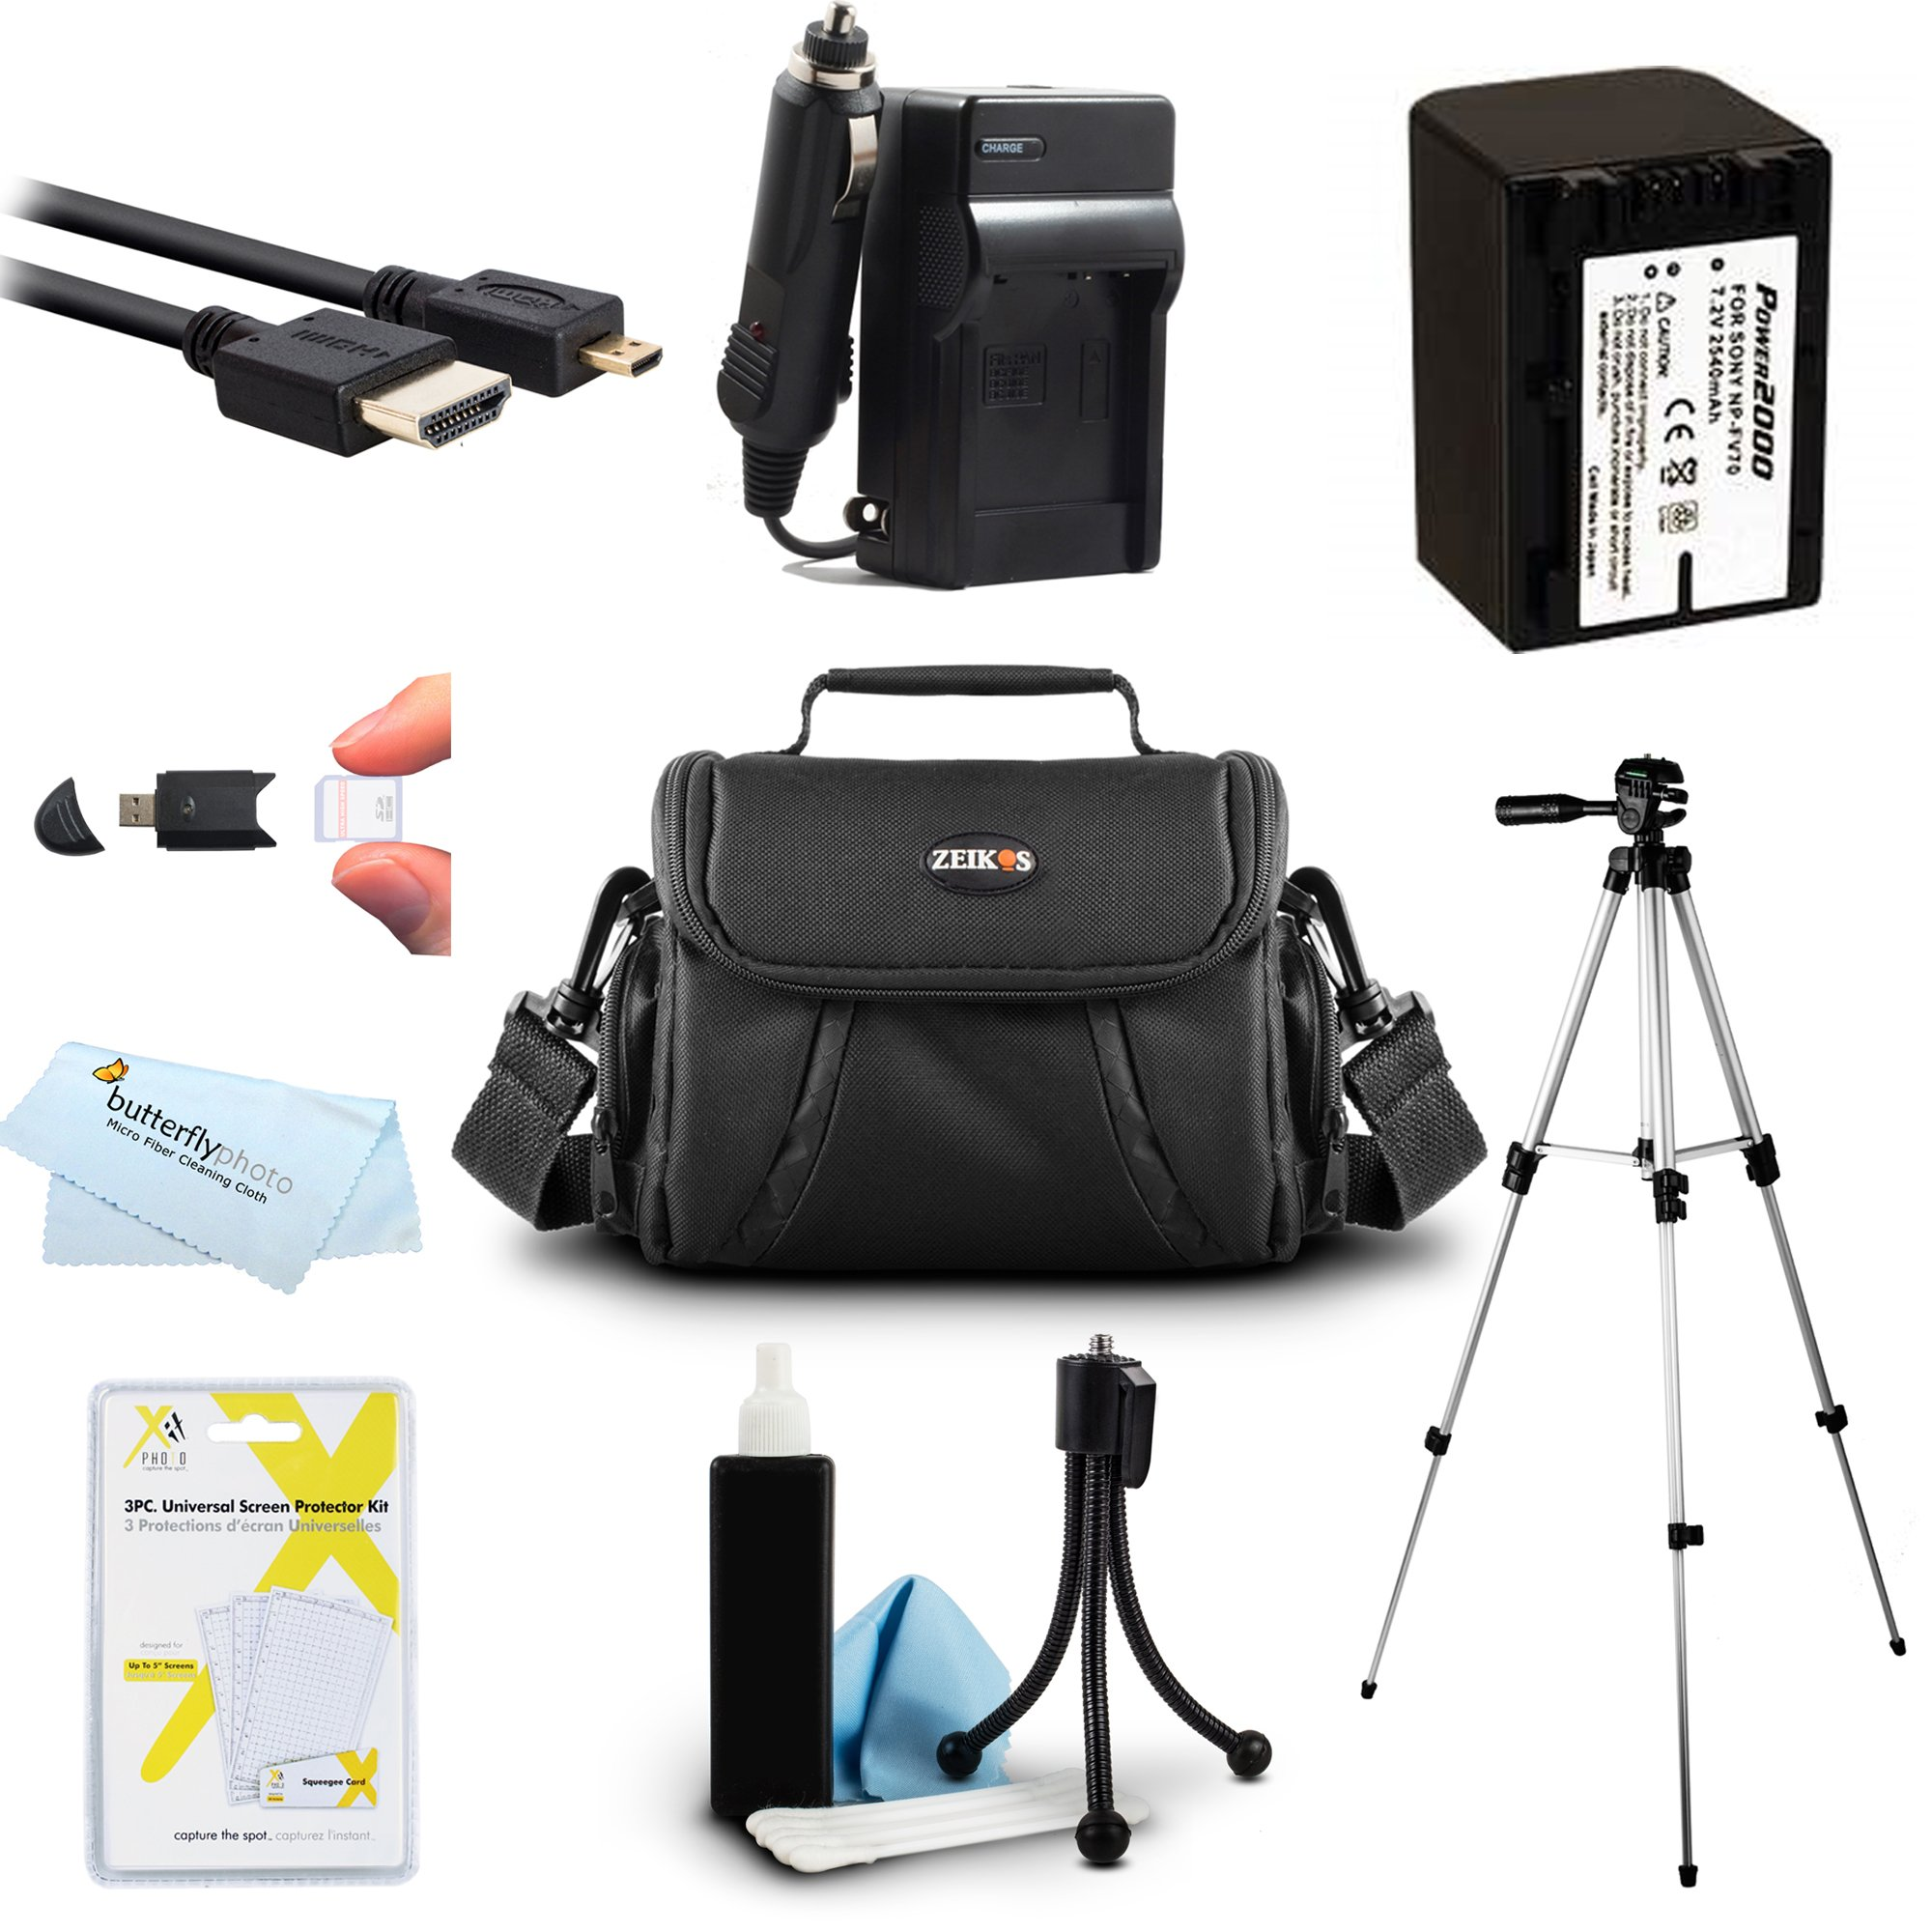 Must Have Accessory Kit For Sony HDR-CX230, HDR-CX330, HDR-CX900, HDR-PJ540, HDR-PJ670, FDR-AX33, FDR-AX53, FDRAX53/B HD Camcorder Includes Replacement NP-FV70 Battery + Charger + Case + Tripod + More